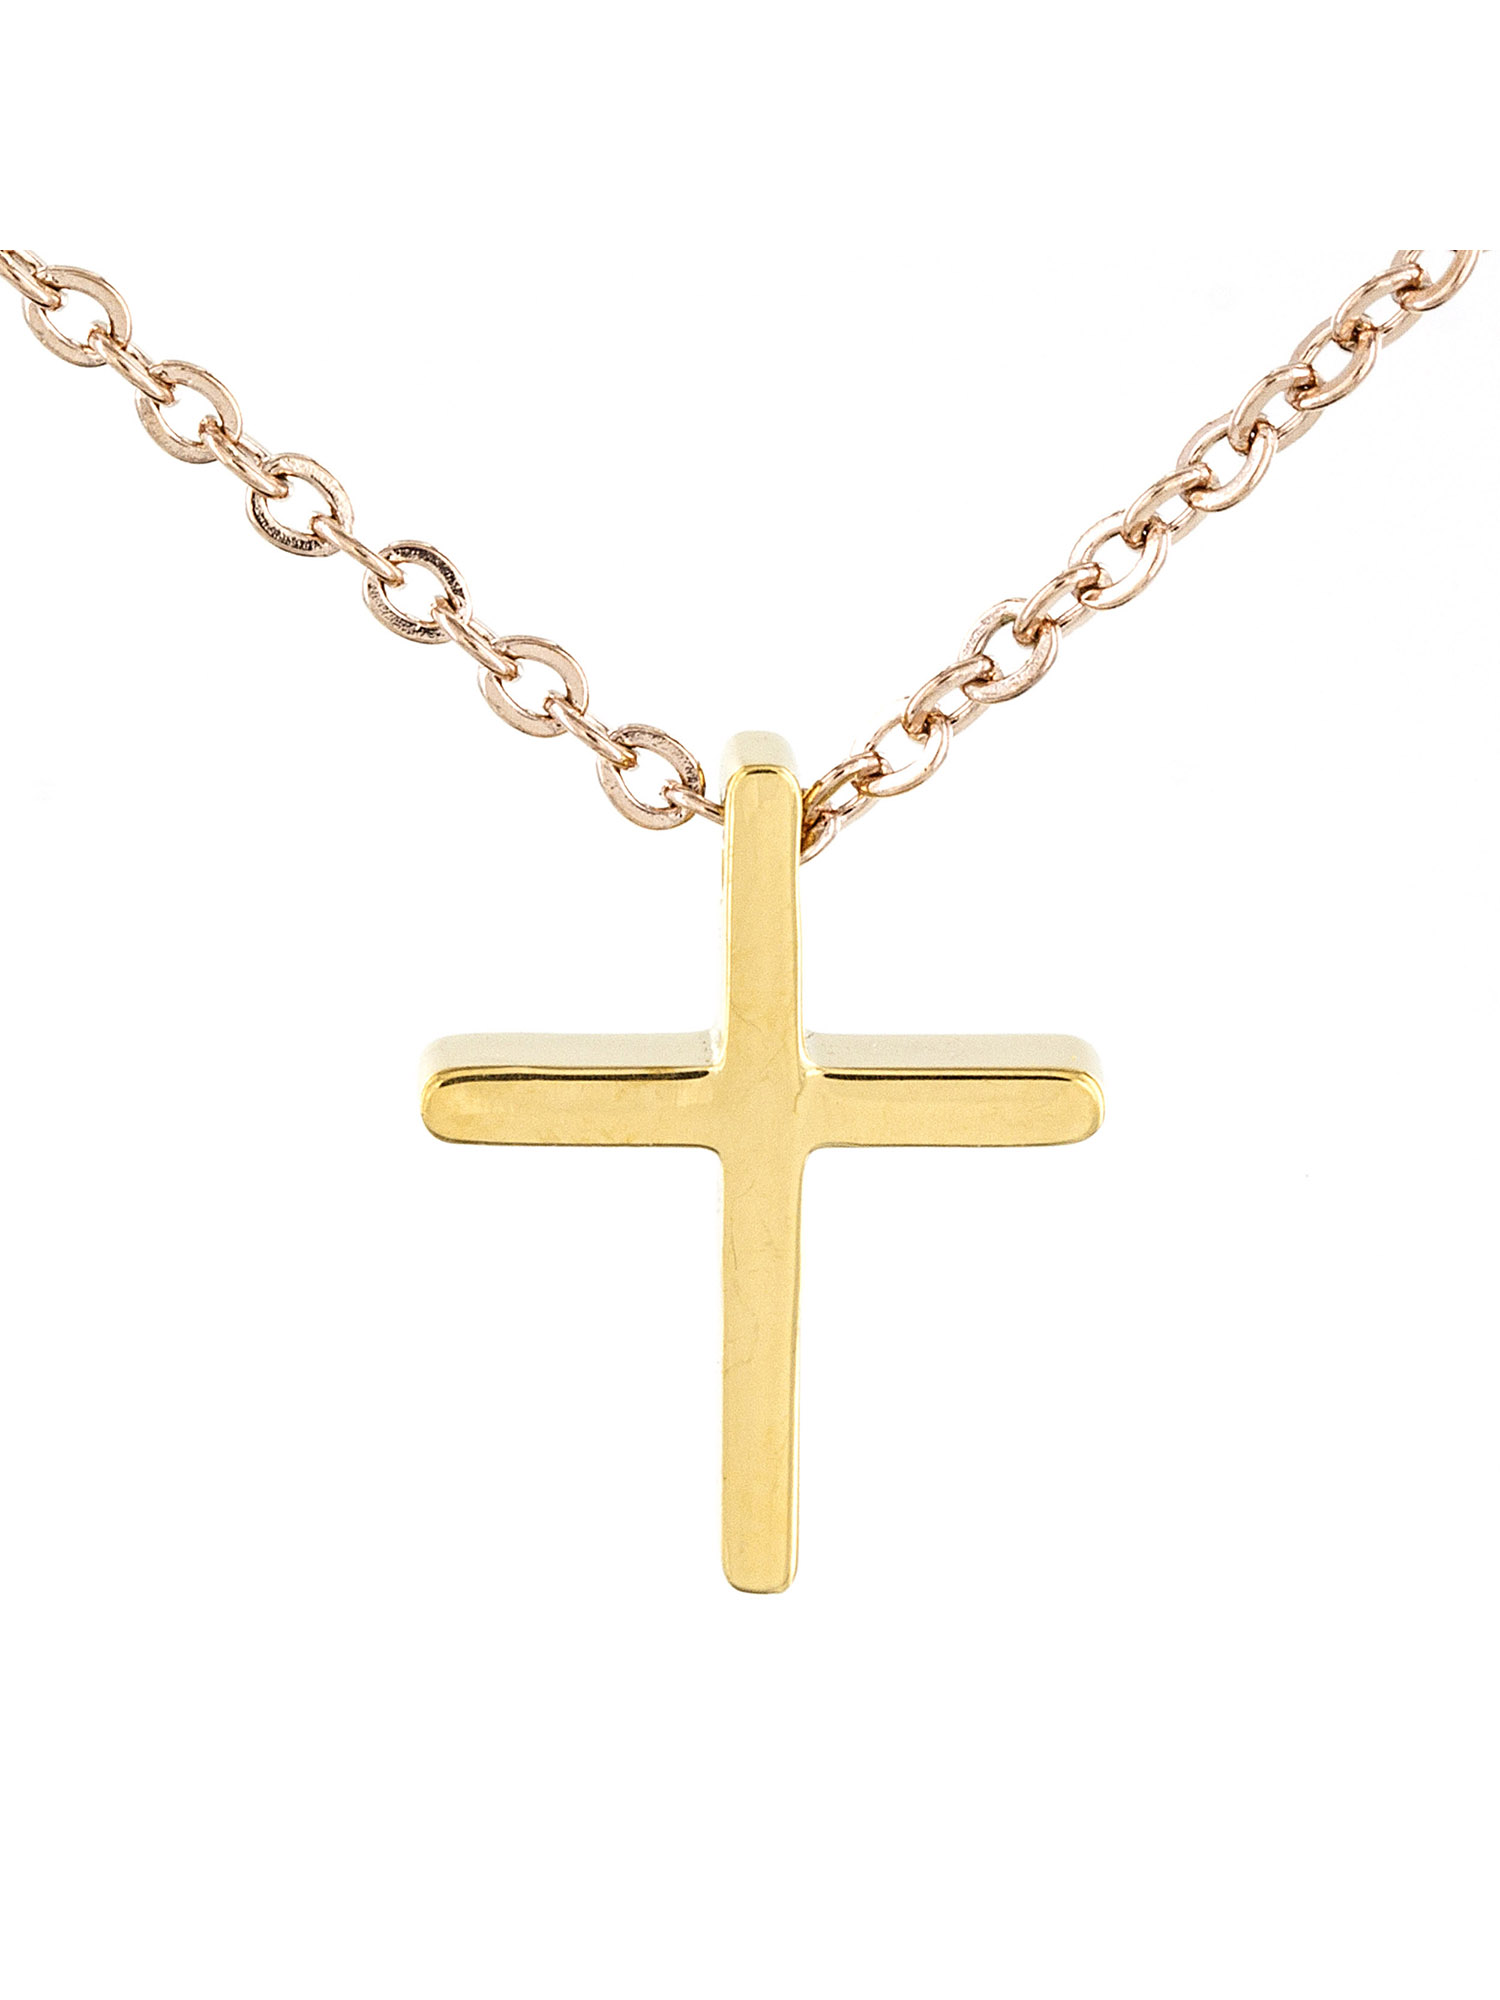 ELYA Stainless Steel Two-tone Cross Pendant Necklace